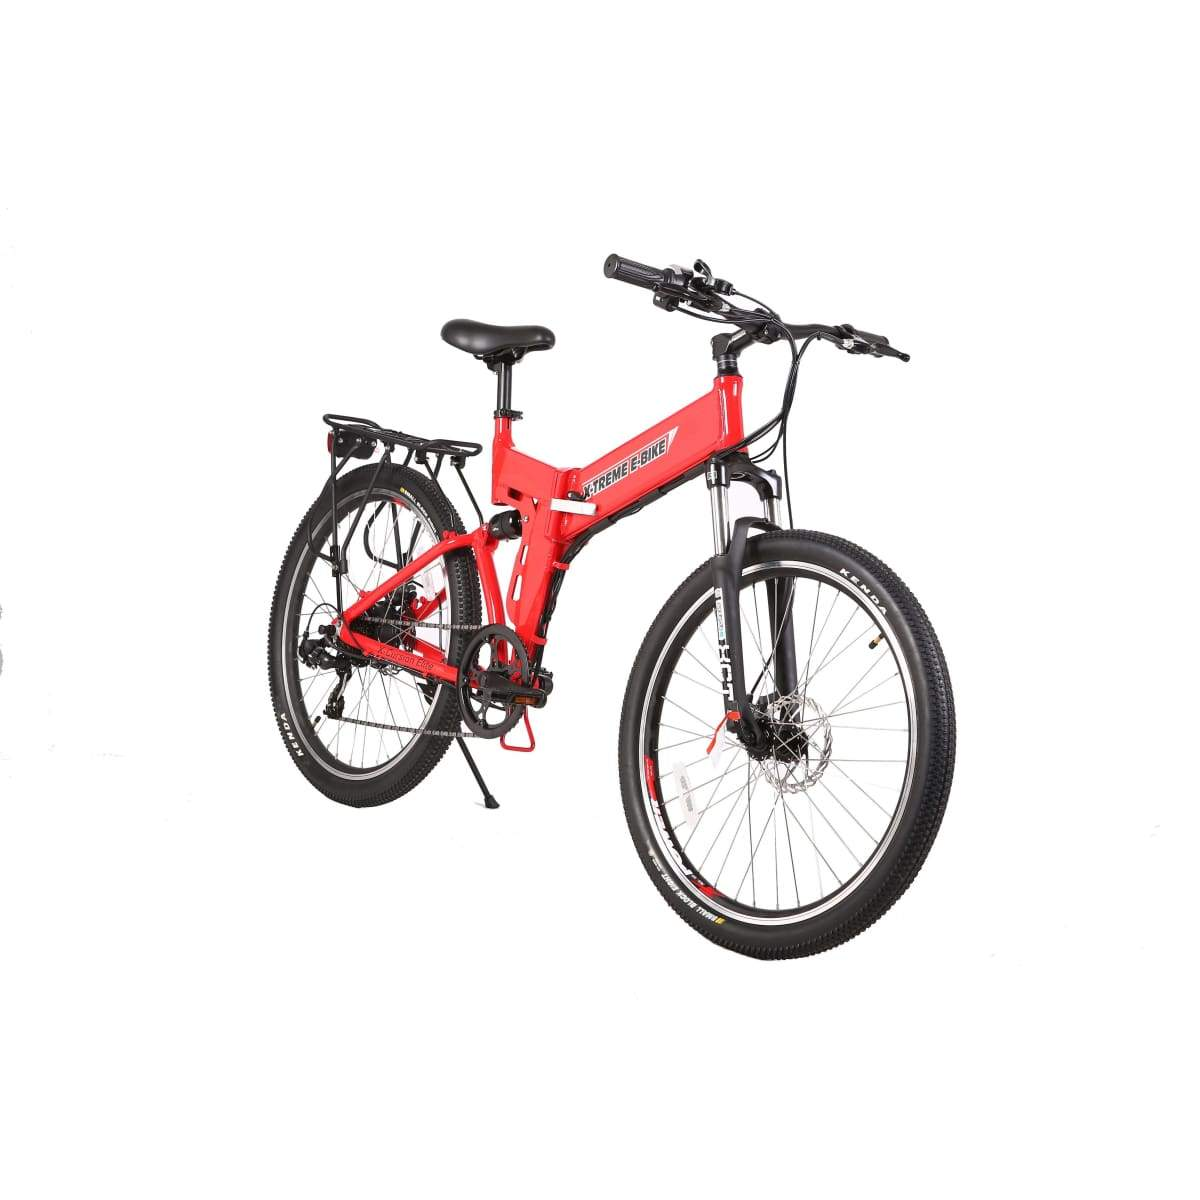 Electric Mountain Bike X-Treme X-Cursion Elite 300W Folding Ebike - Red / 24V - Electric Bike $1007.00